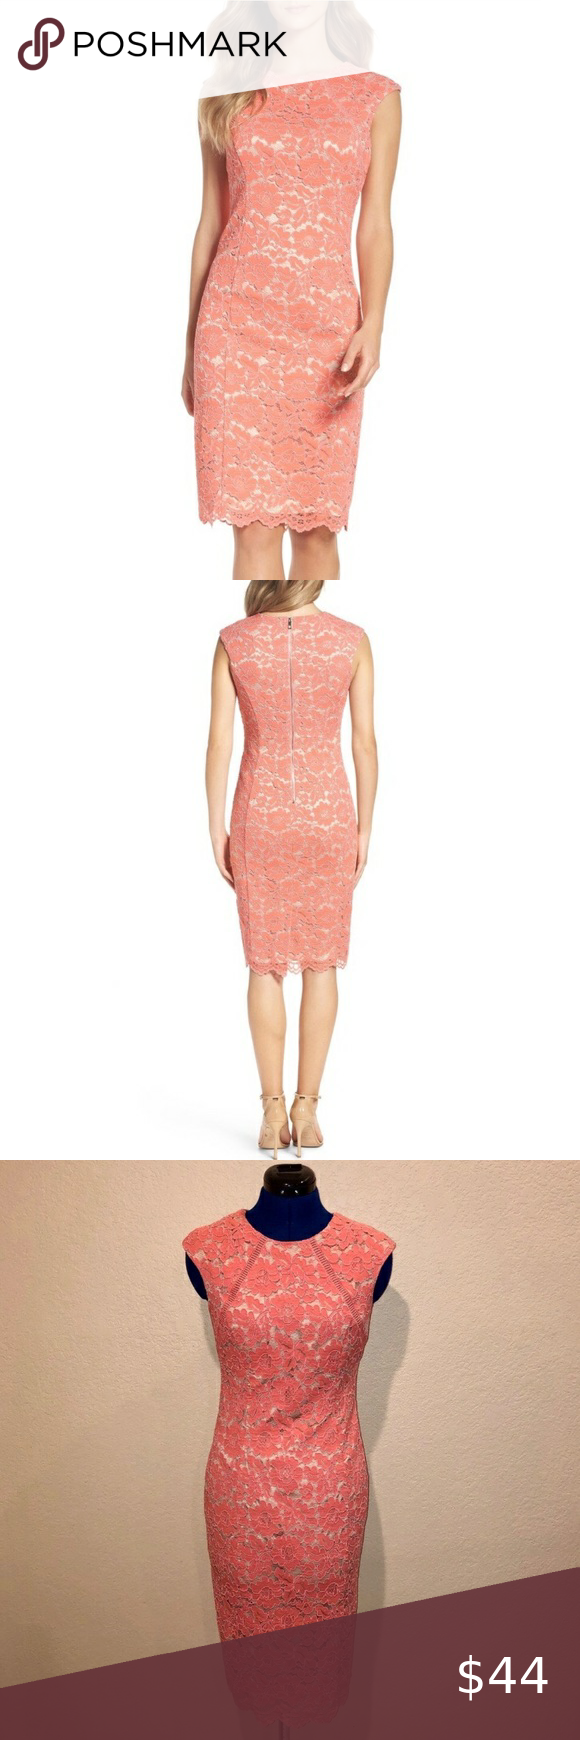 Vince Camuto Pink Lace Bodycon Dress